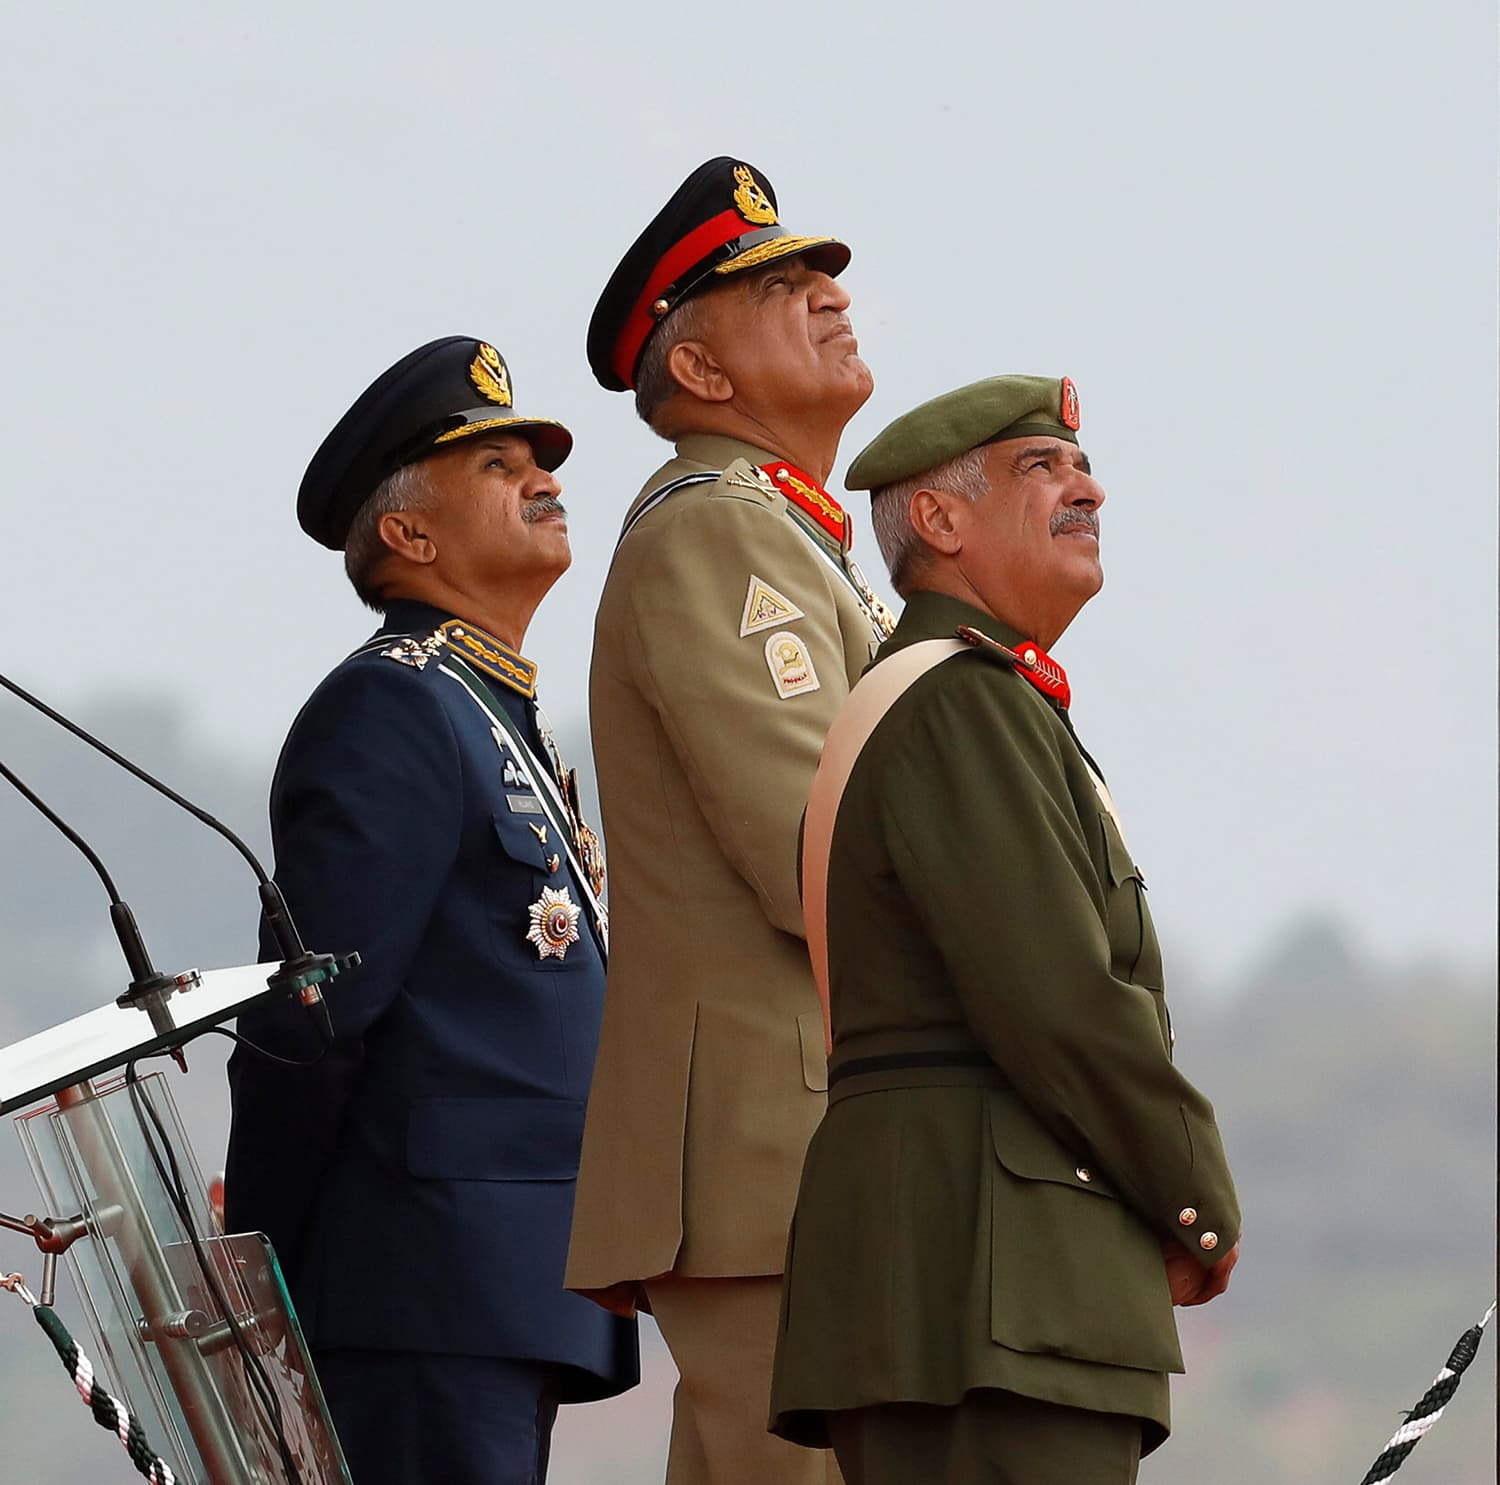 Chief of Army Staff Gen Qamar Javed Bajwa (C) along with Commander of the National Guard of the Kingdom of Bahrain Lieutenant-General Sheikh Mohammed bin Isa bin Salman Al Khalifa and Air Chief Marshal Mujahid Anwar Khan observe the fly-past by Pakistan Air Force JF-17 Thunder fighter jets during the Pakistan Day military parade in Islamabad. ─ Reuters